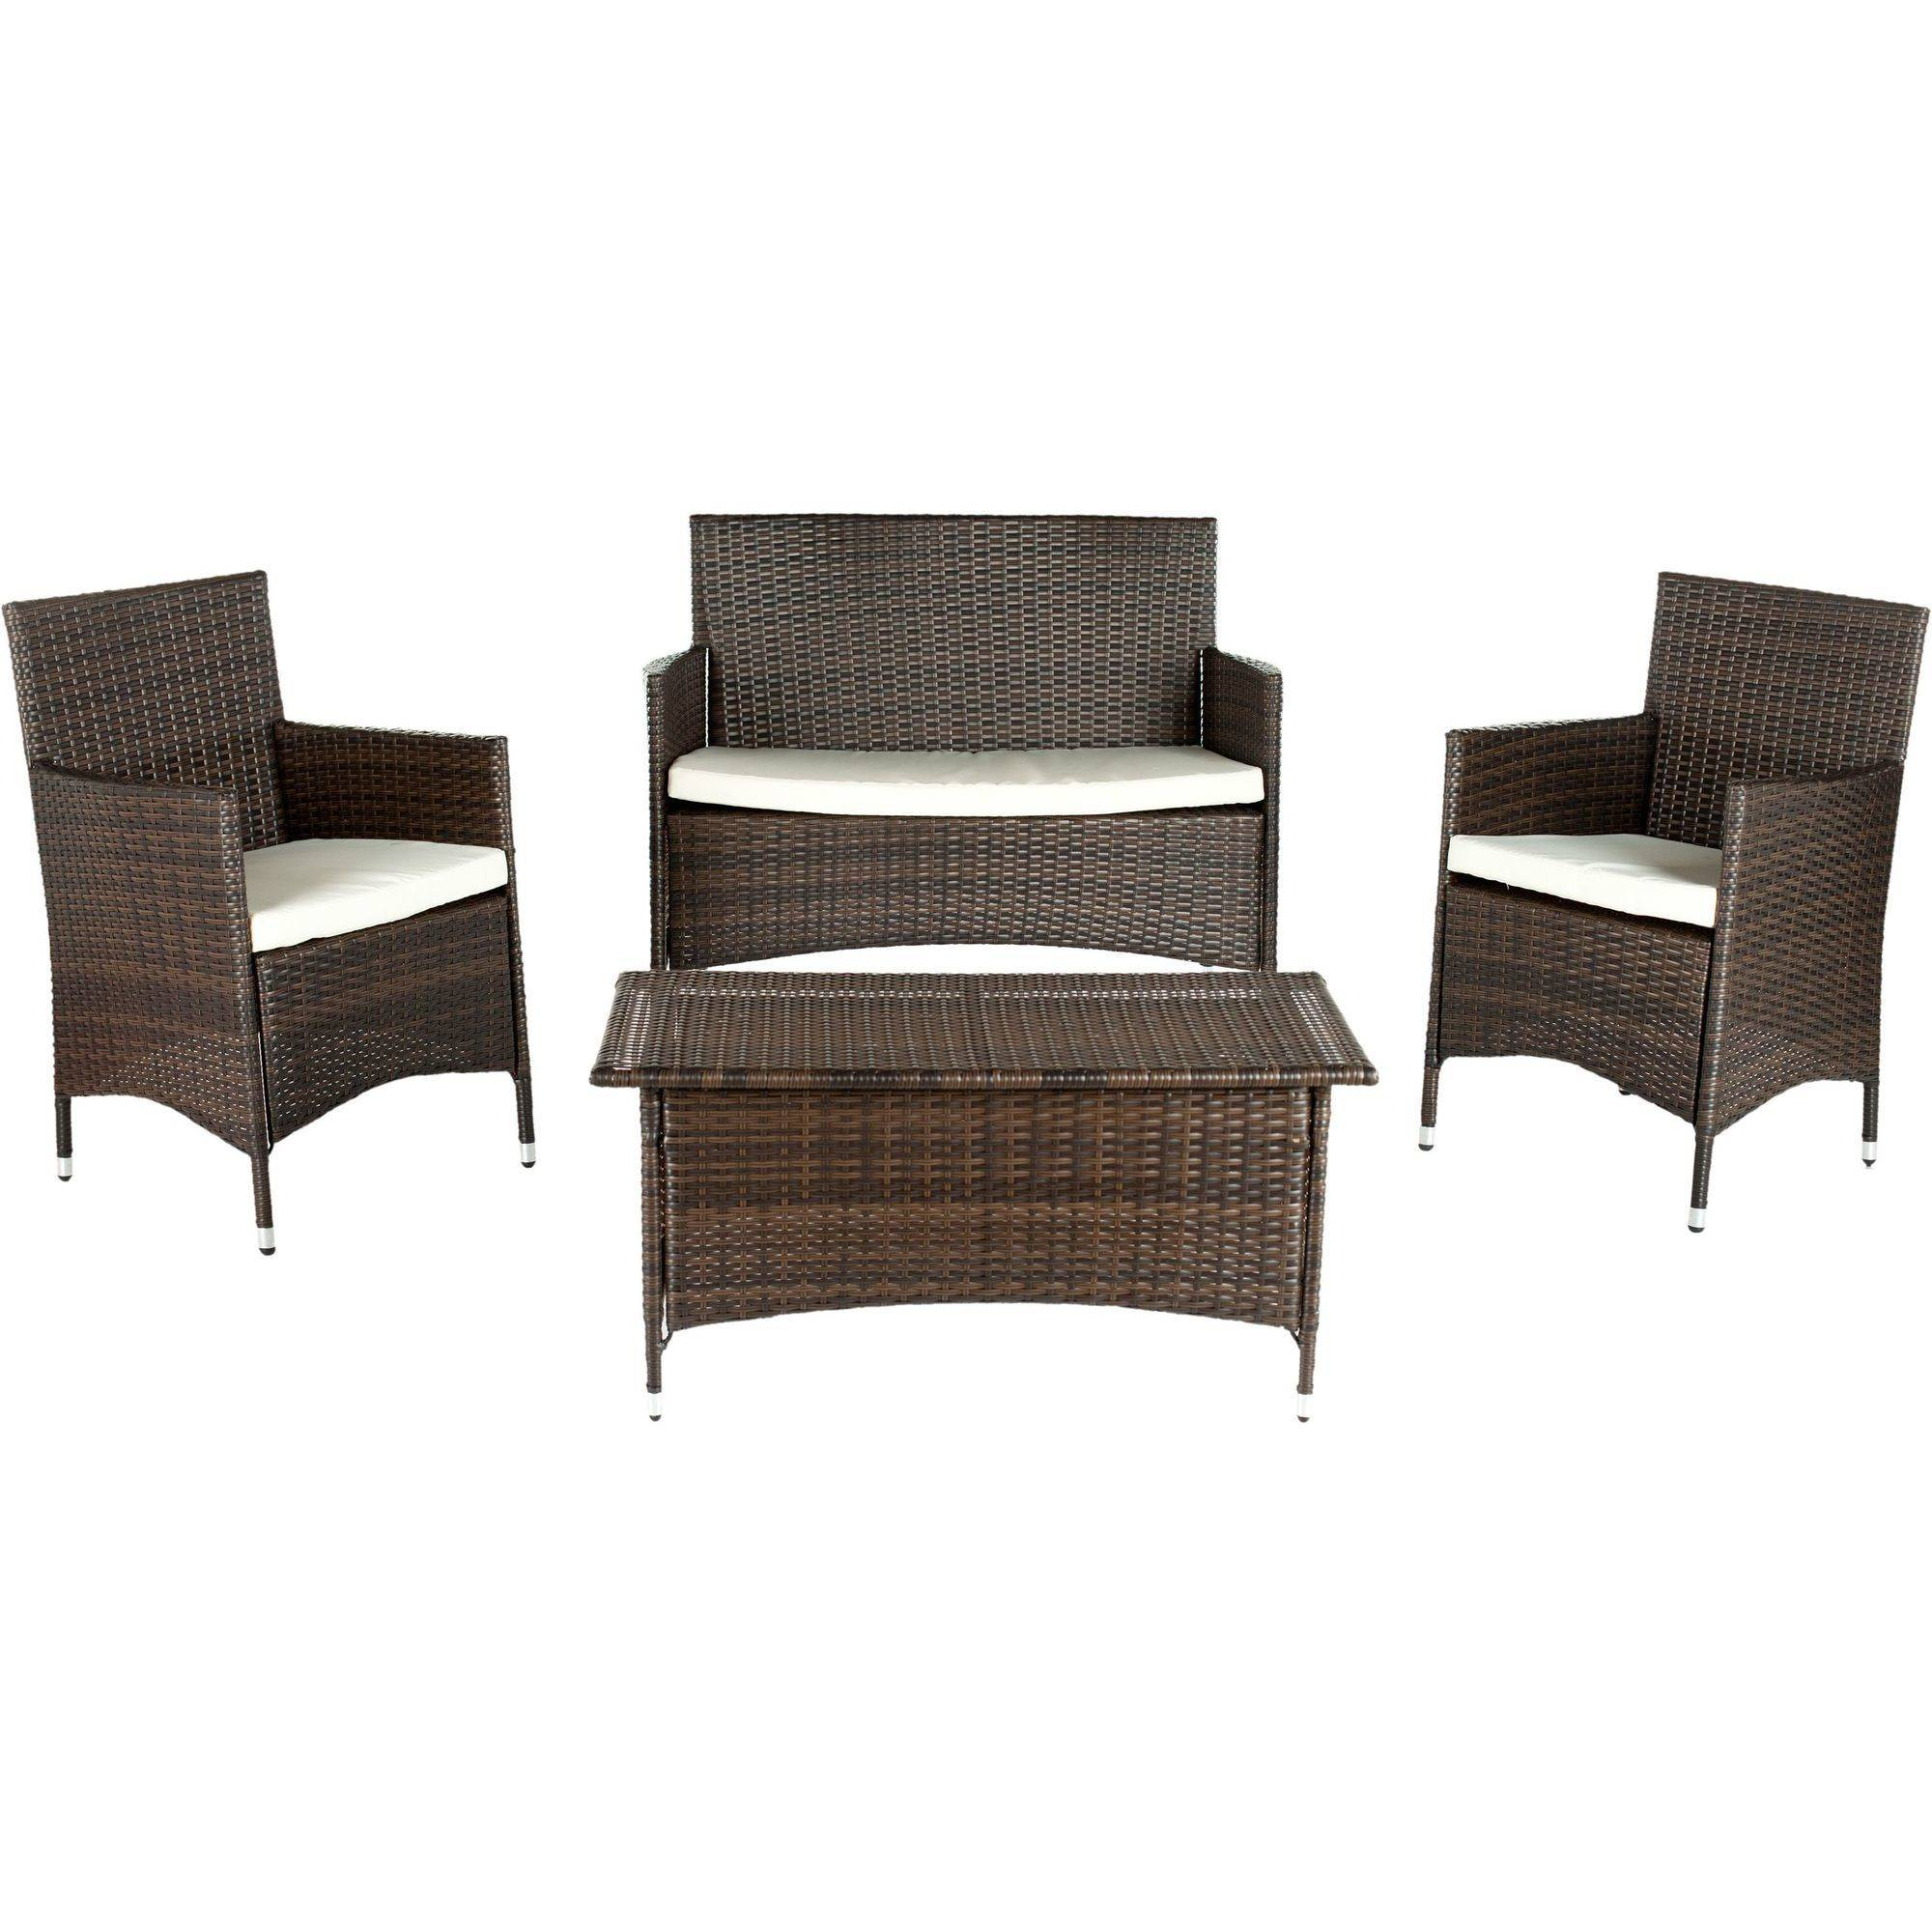 Safavieh Mojavi 4 Piece Wicker Outdoor Set   Walmart.com